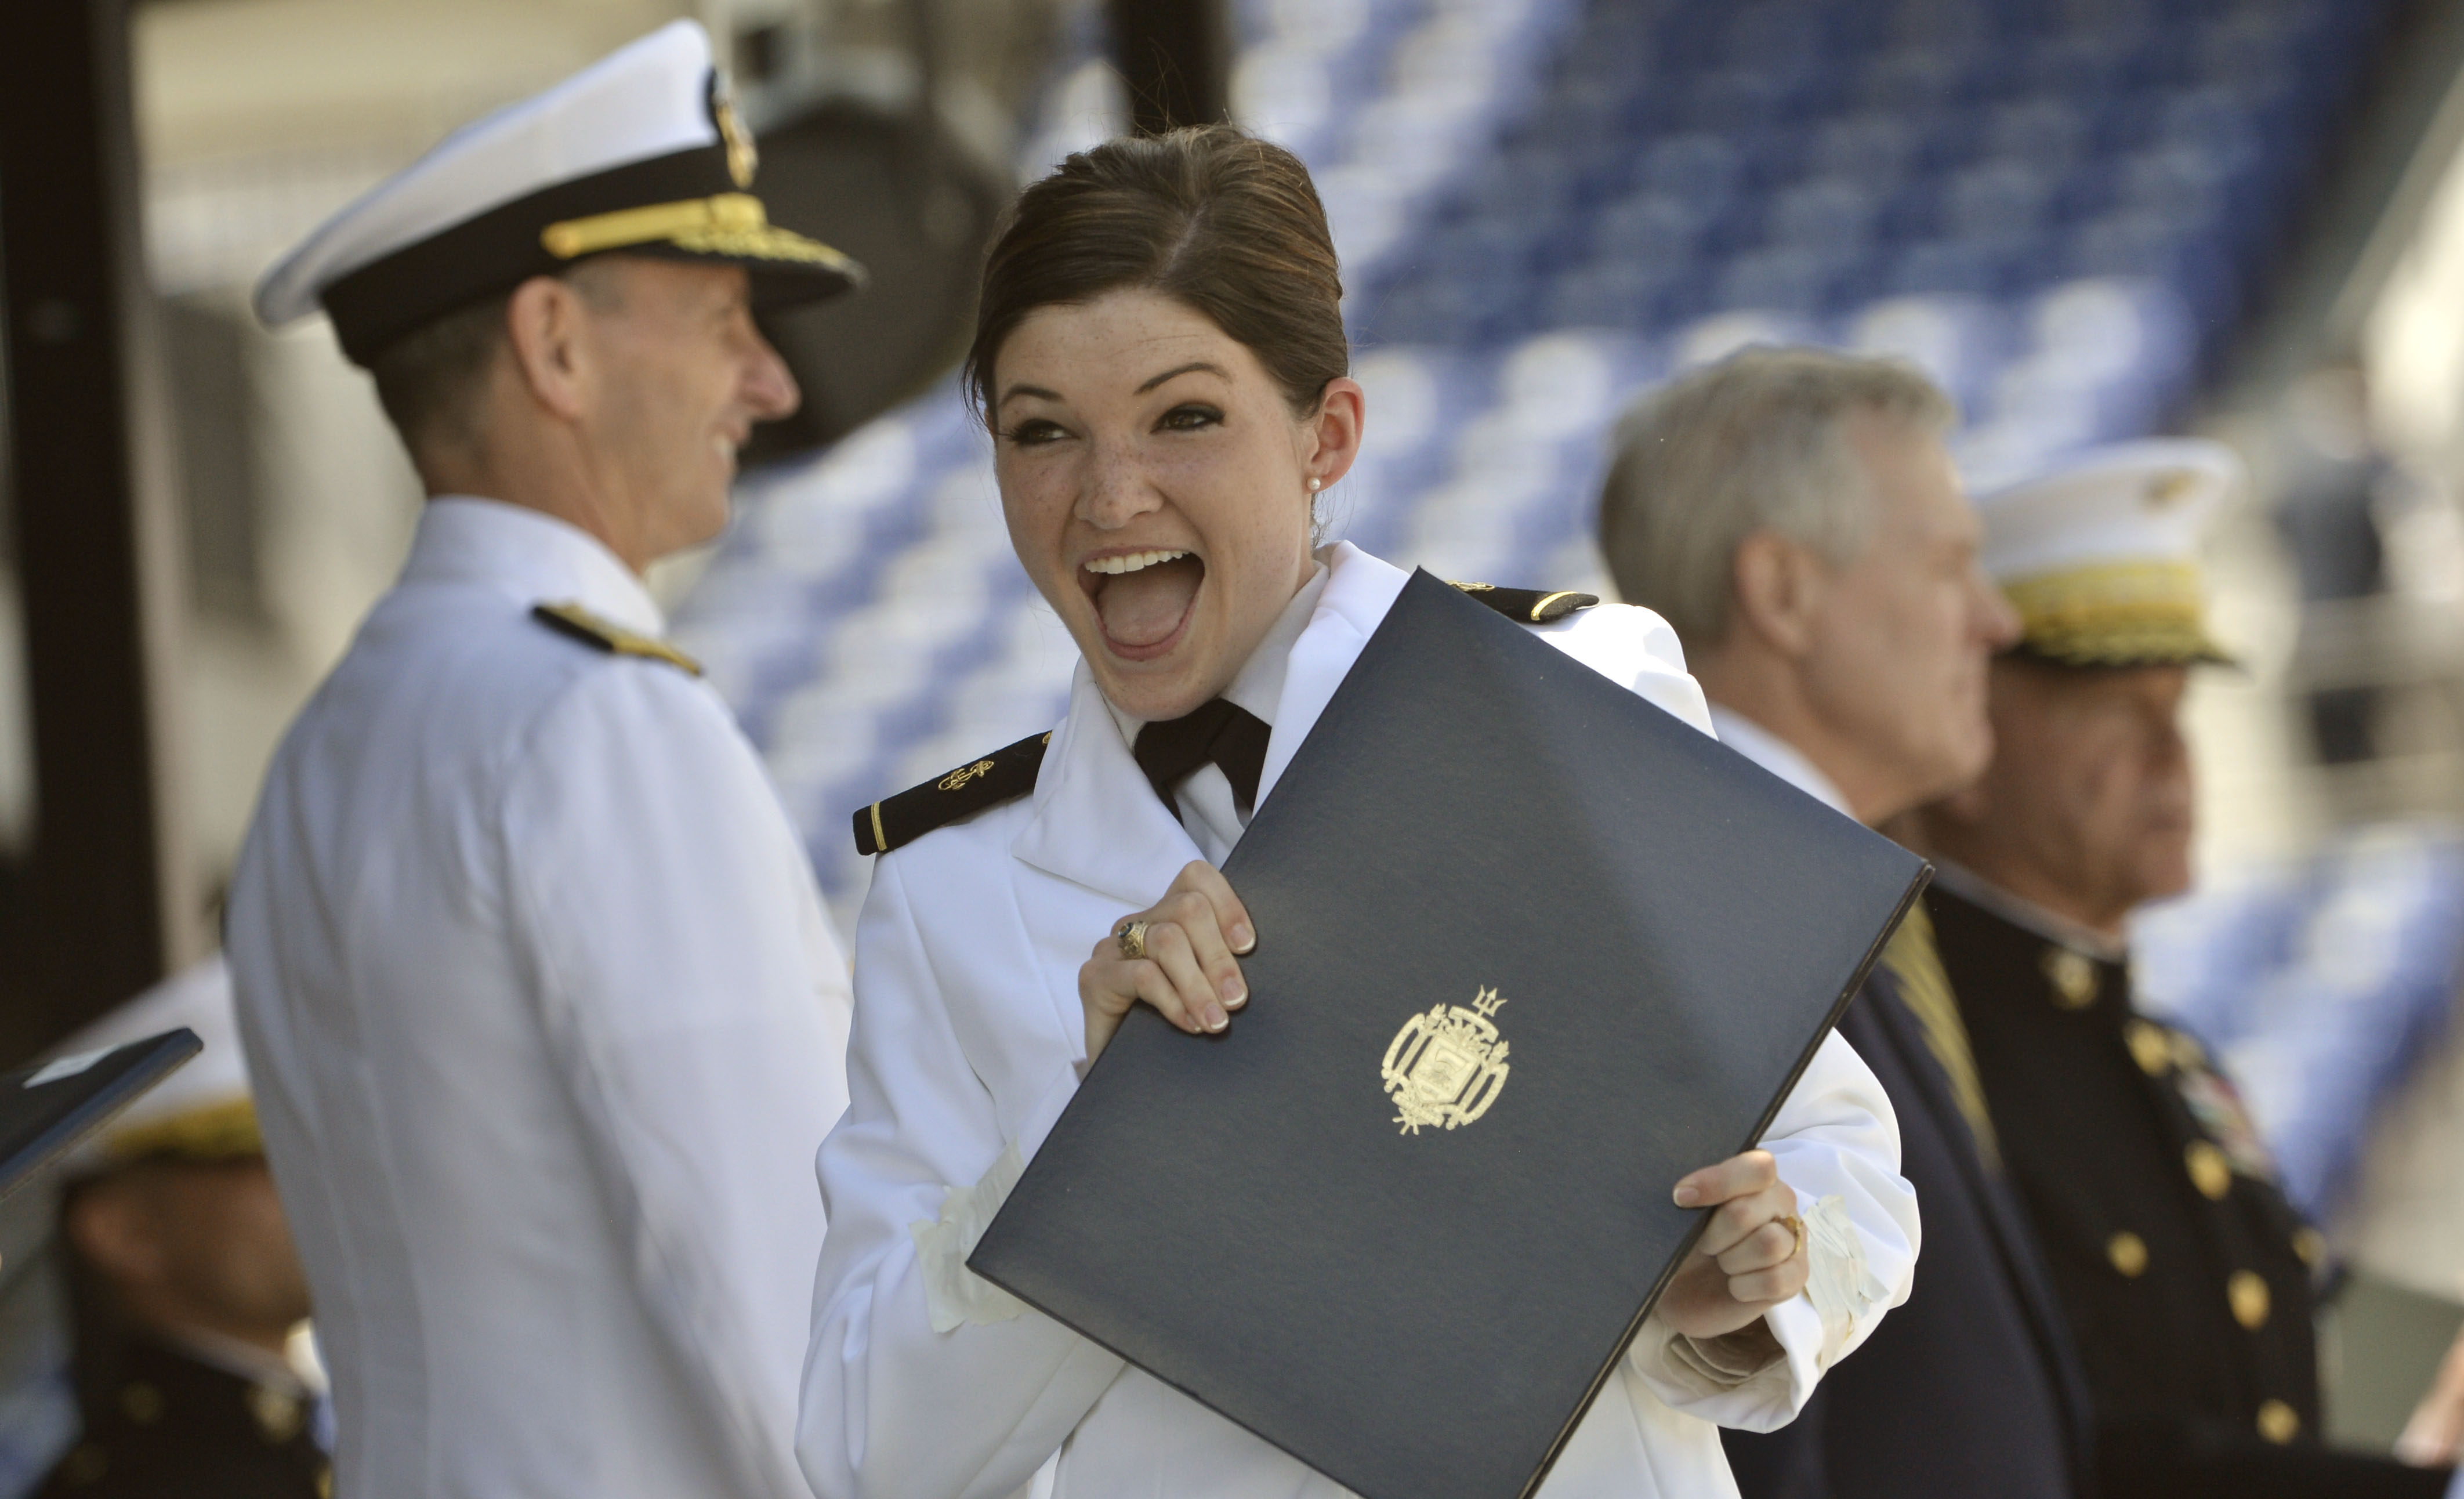 naval academy essay The united states naval academy summer seminar is the first step in navigating your future to becoming one of our nation's next generation of leaders a 1000- character limit essay answering why are you interested in attending the naval academy summer seminar, have you received any awards (stem-related.